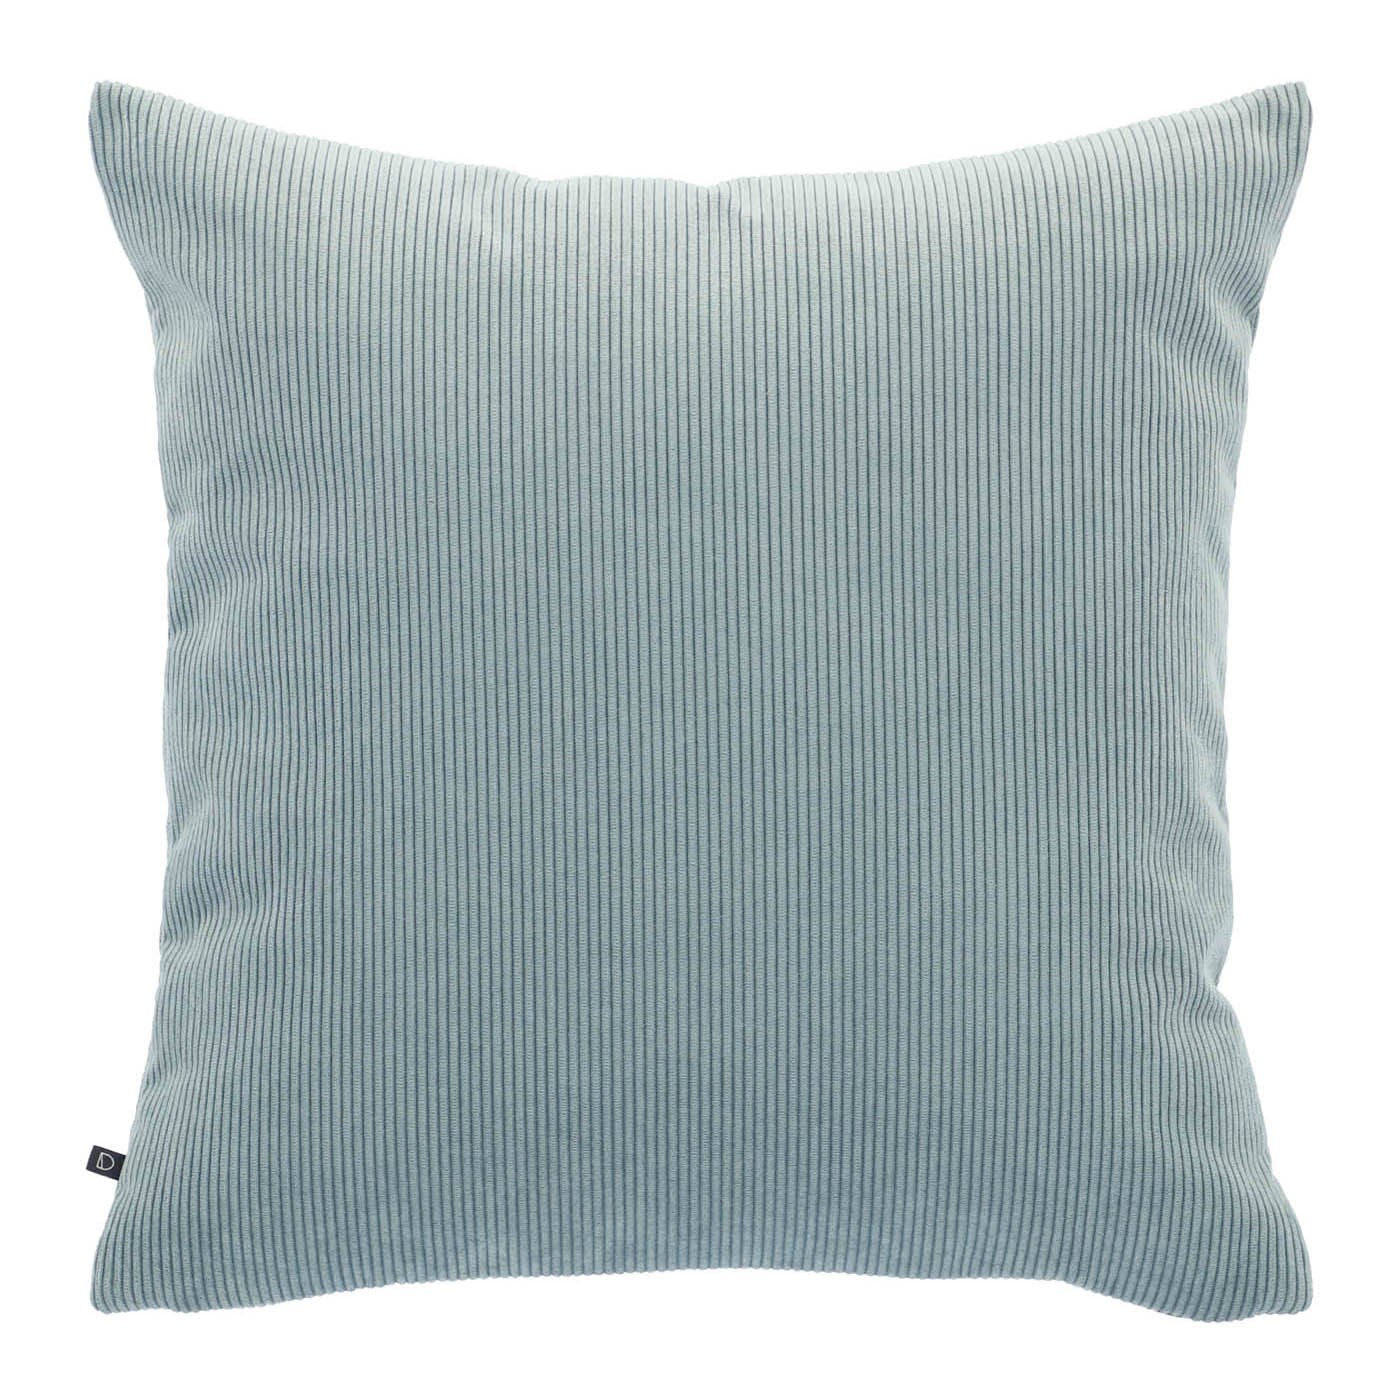 Chelsea Corduroy Fabric Scatter Cushion, Turquoise